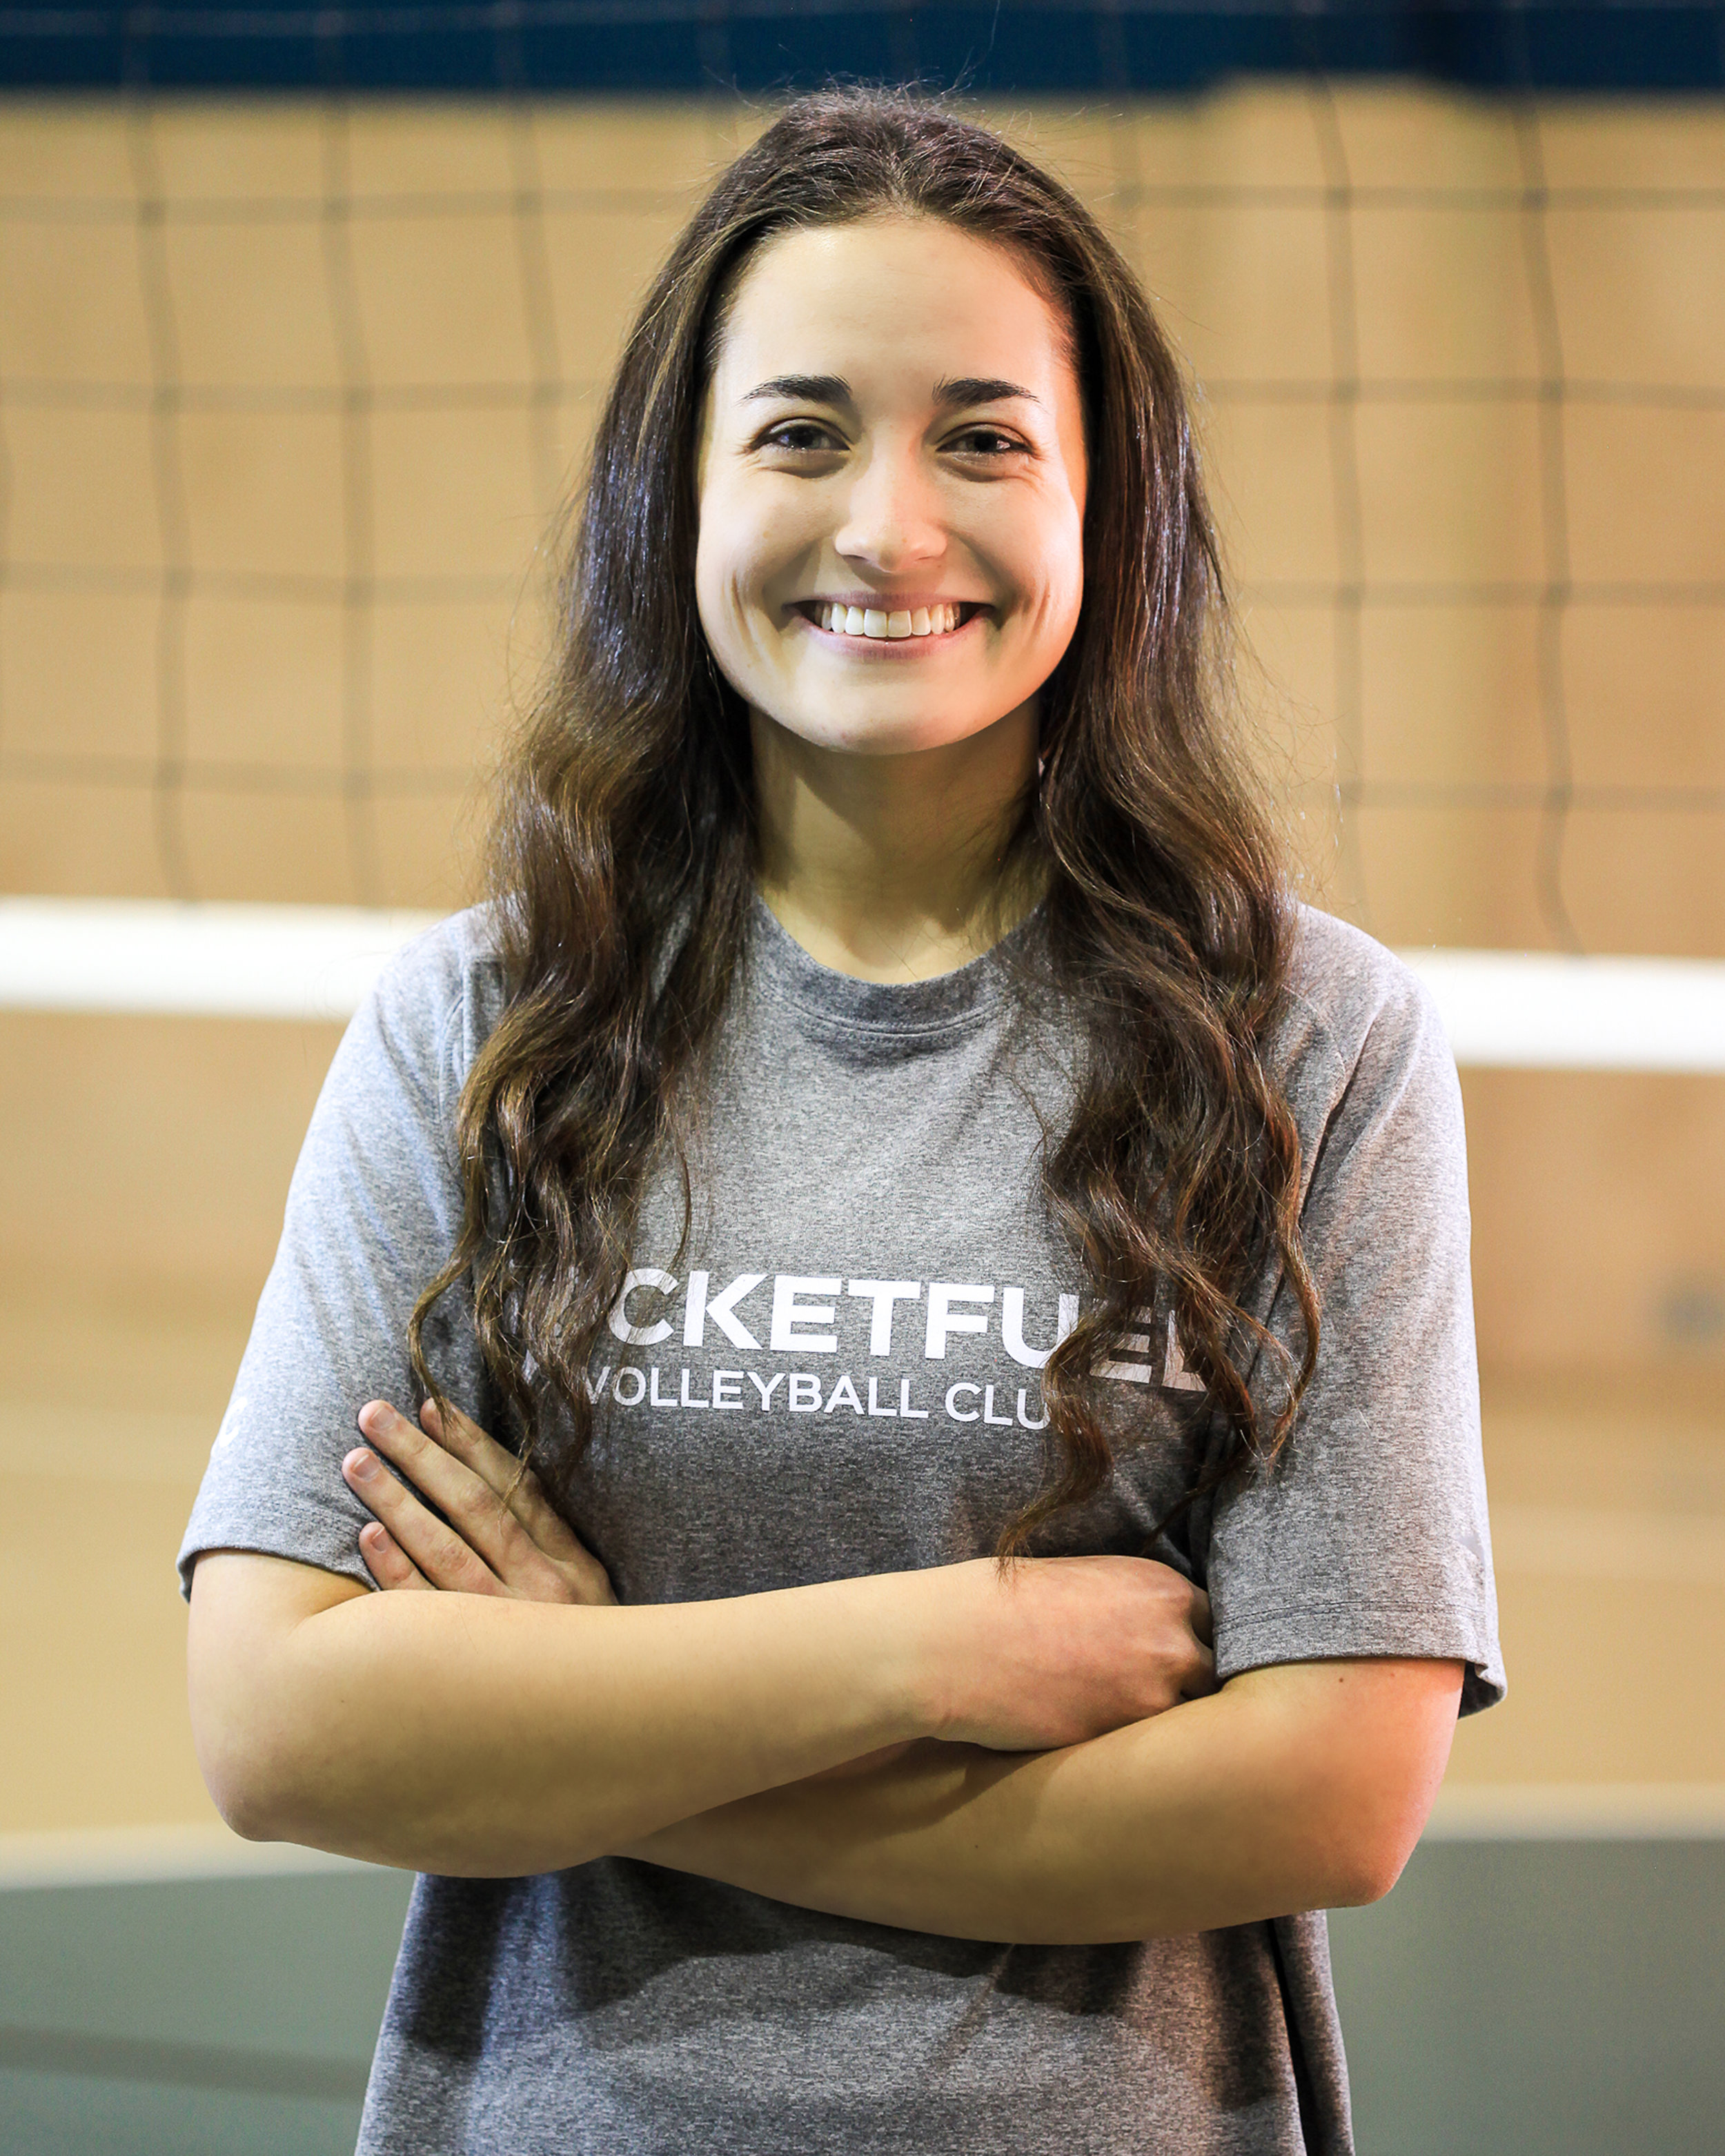 Amanda Farr - Meet Amanda Farr of RocketFuel Volleyball Club! Amanda is from Sunnyvale, Texas. She is a senior at Centenary College where she is double majoring in Psychology and Sociology. She played volleyball at Sunnyvale High School and club ball for Texas Assault and Victory in the Dallas area. She is knowledgeable in many areas of volleyball. Her specialty is Libero/Defensive Specialist. Amanda also has experience coaching younger girls in group and 1:1 settings.